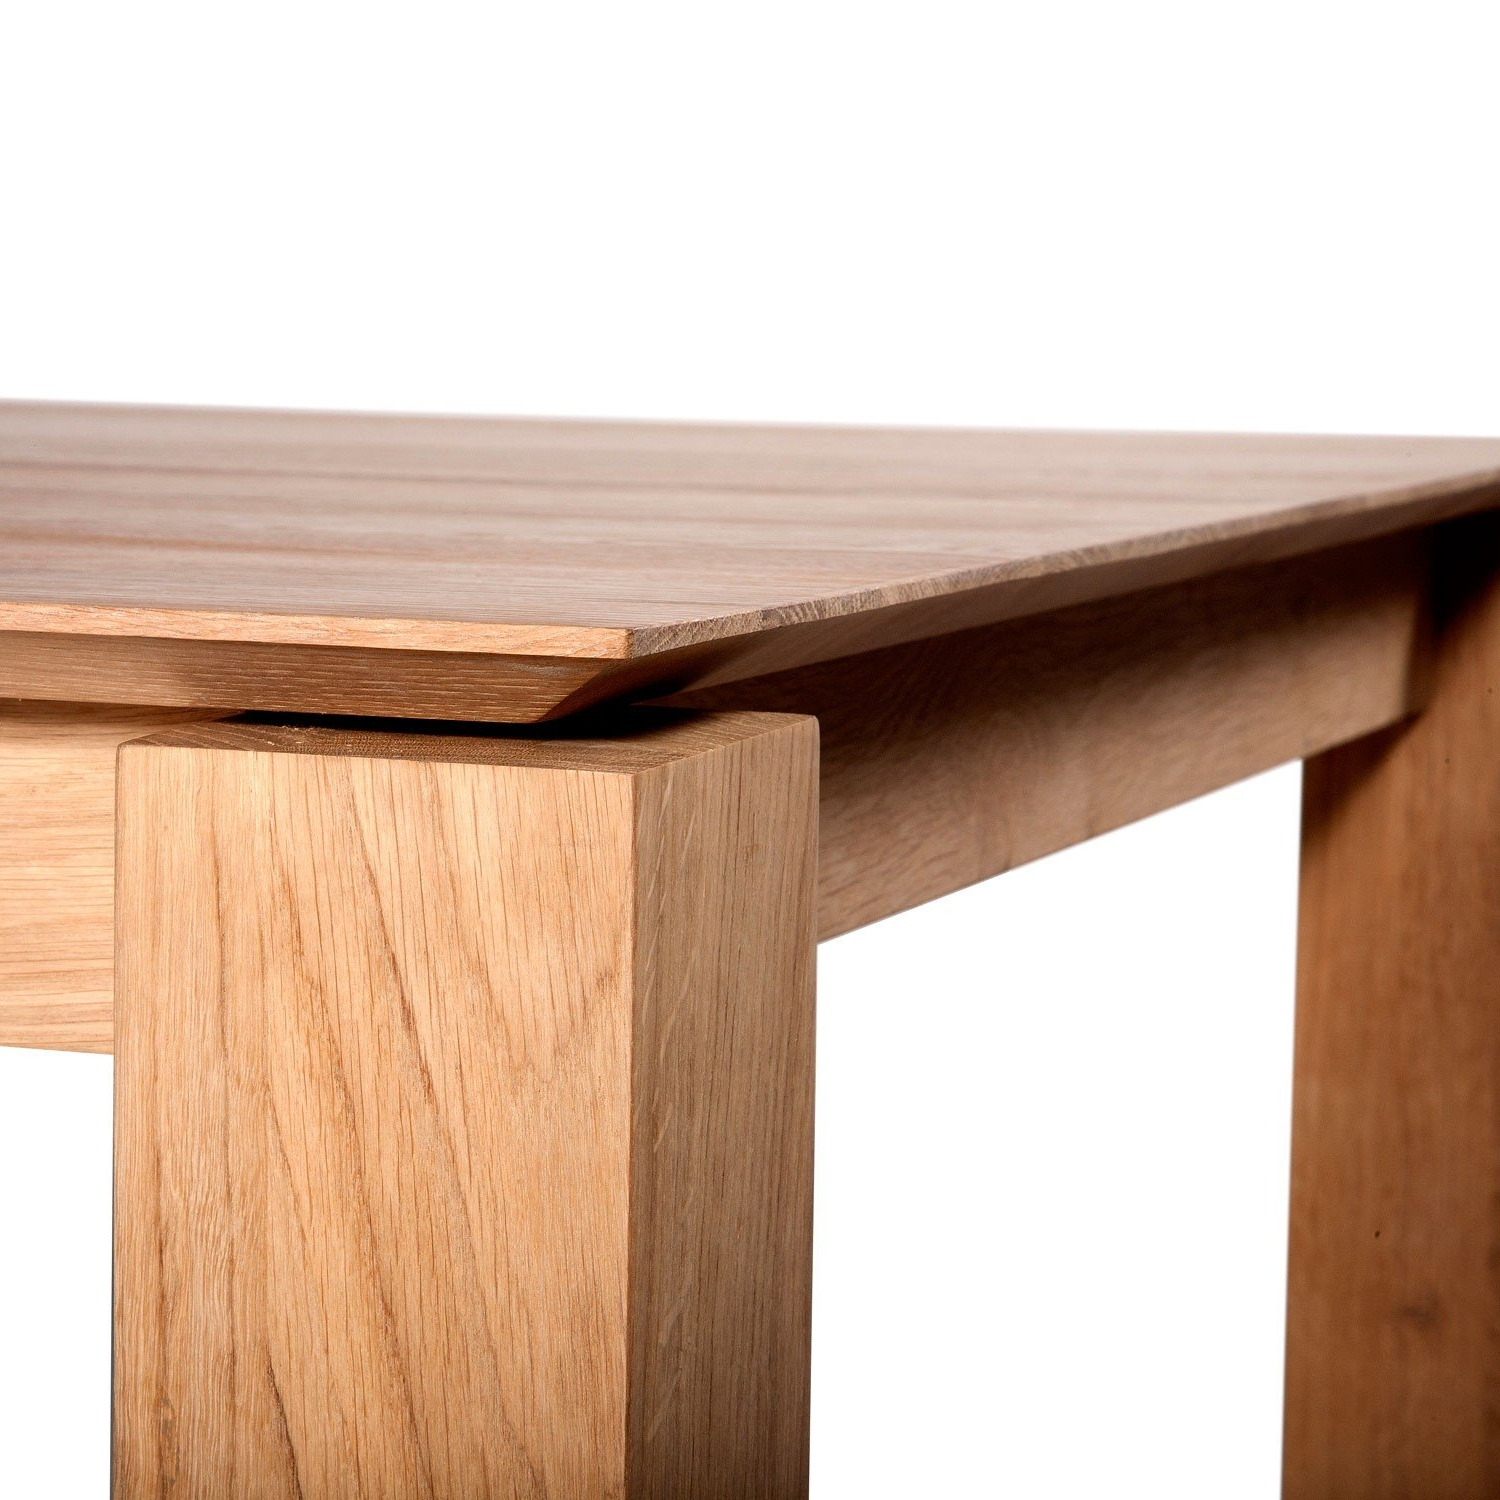 Extending Dining Sets With Regard To Most Up To Date Ethnicraft Oak Slice Extending Dining Tables (Gallery 5 of 25)